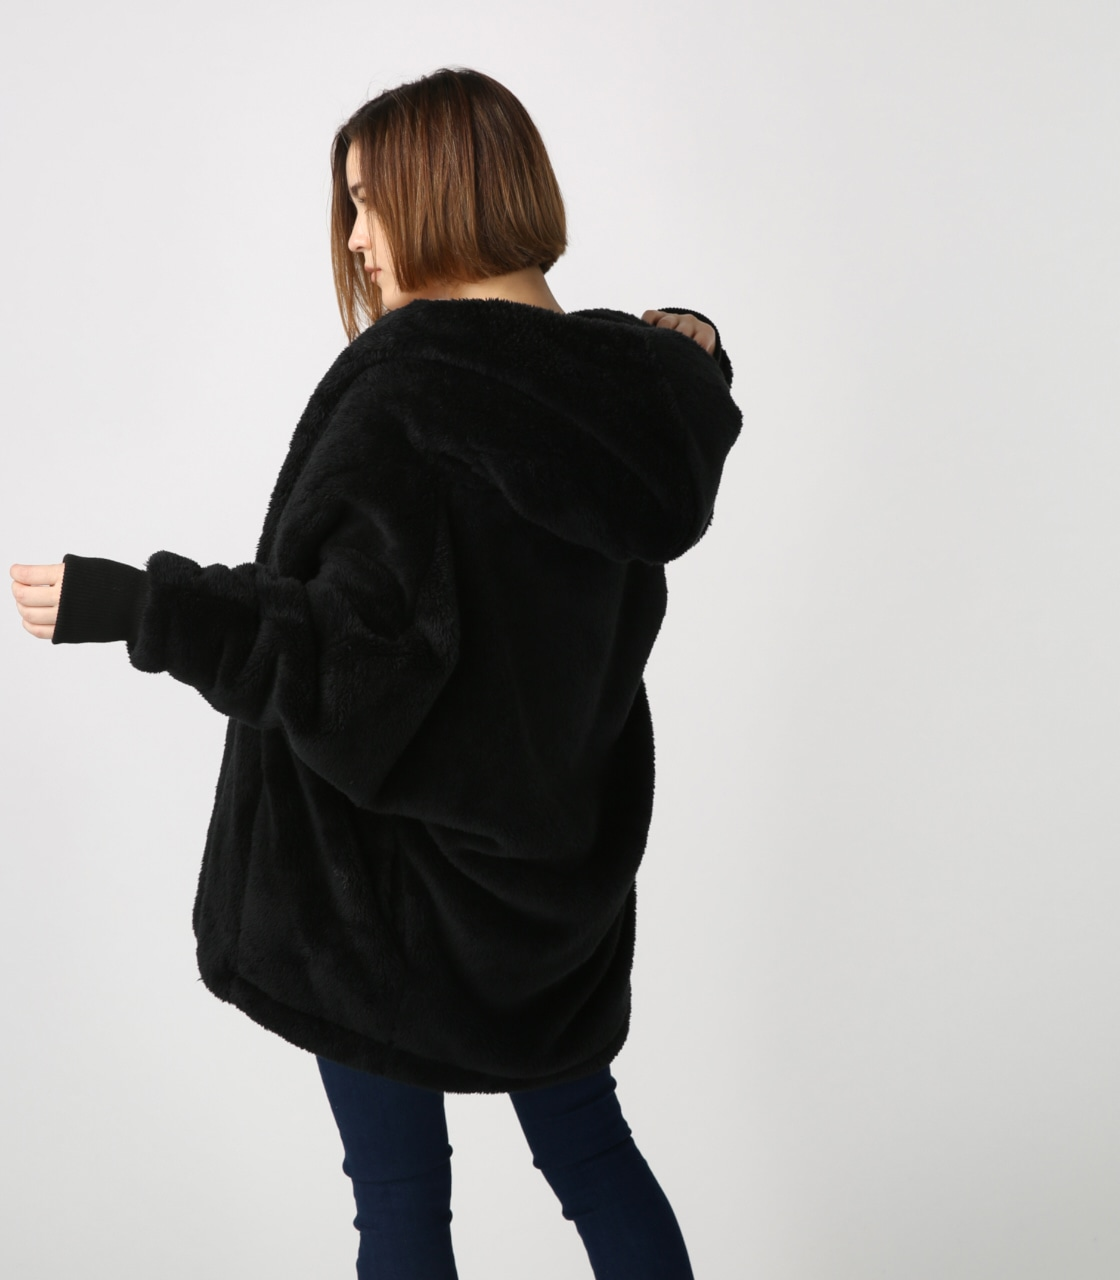 【AZUL BY MOUSSY】ボアショールカラーロングコート【MOOK44掲載 99031】 詳細画像 BLK 3